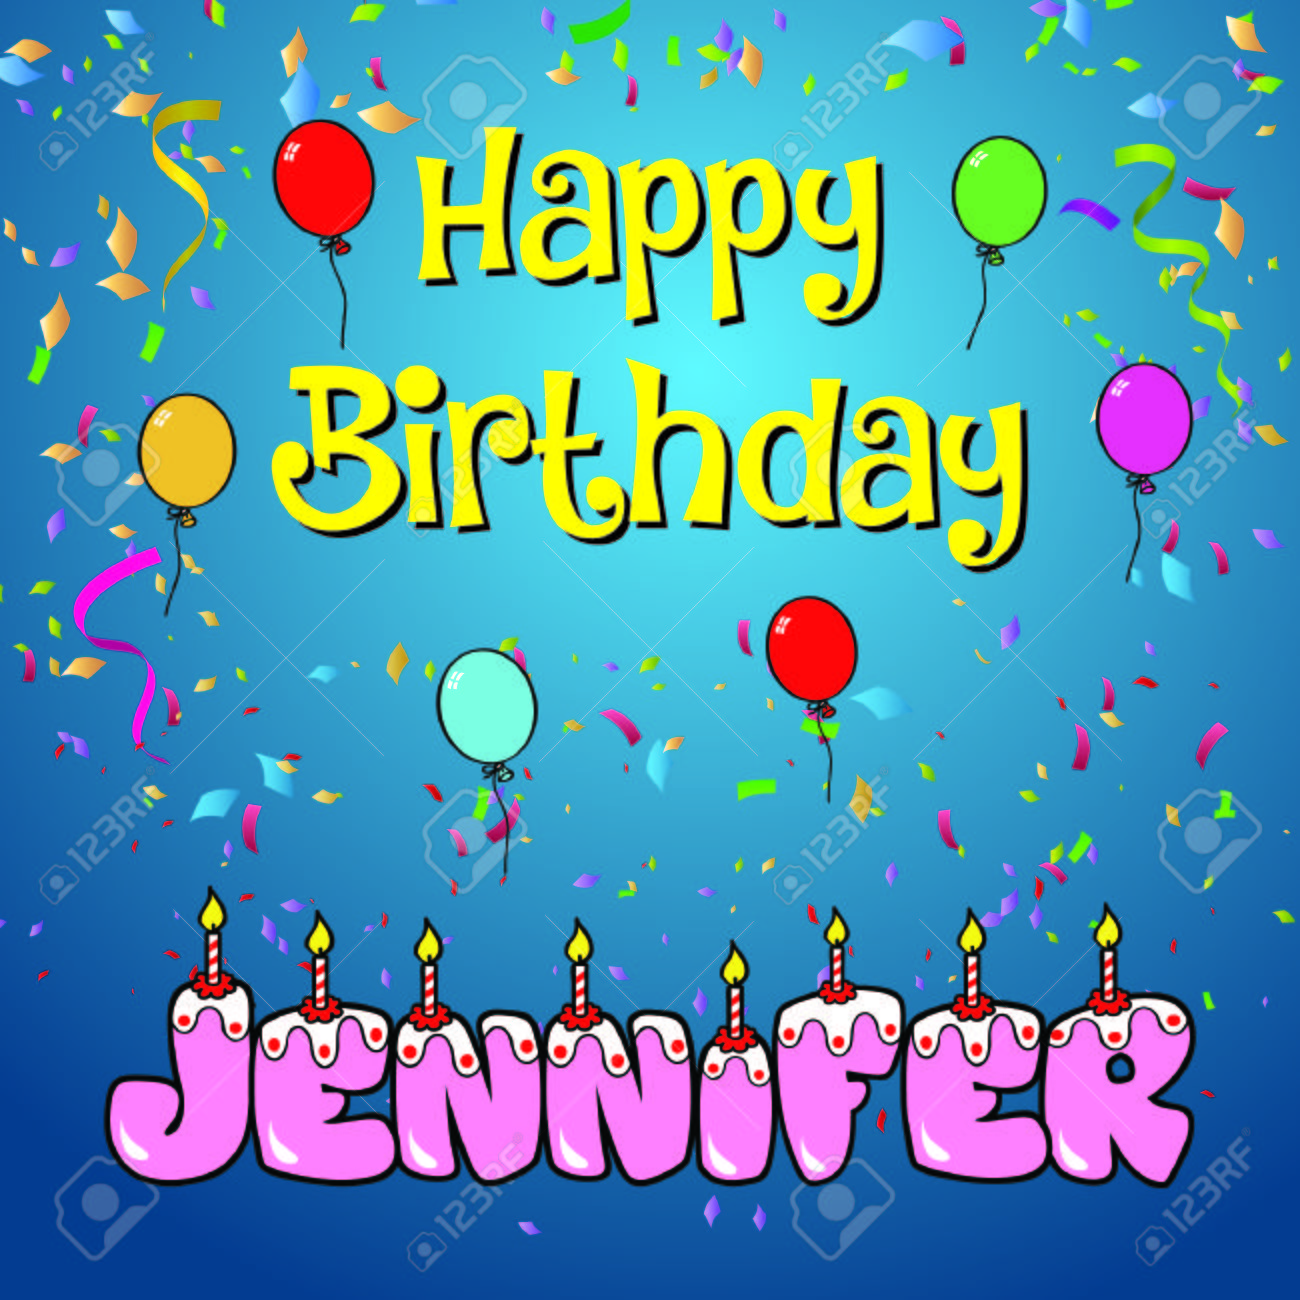 happy birthday jennifer ; 76572286-happy-birthday-jennifer